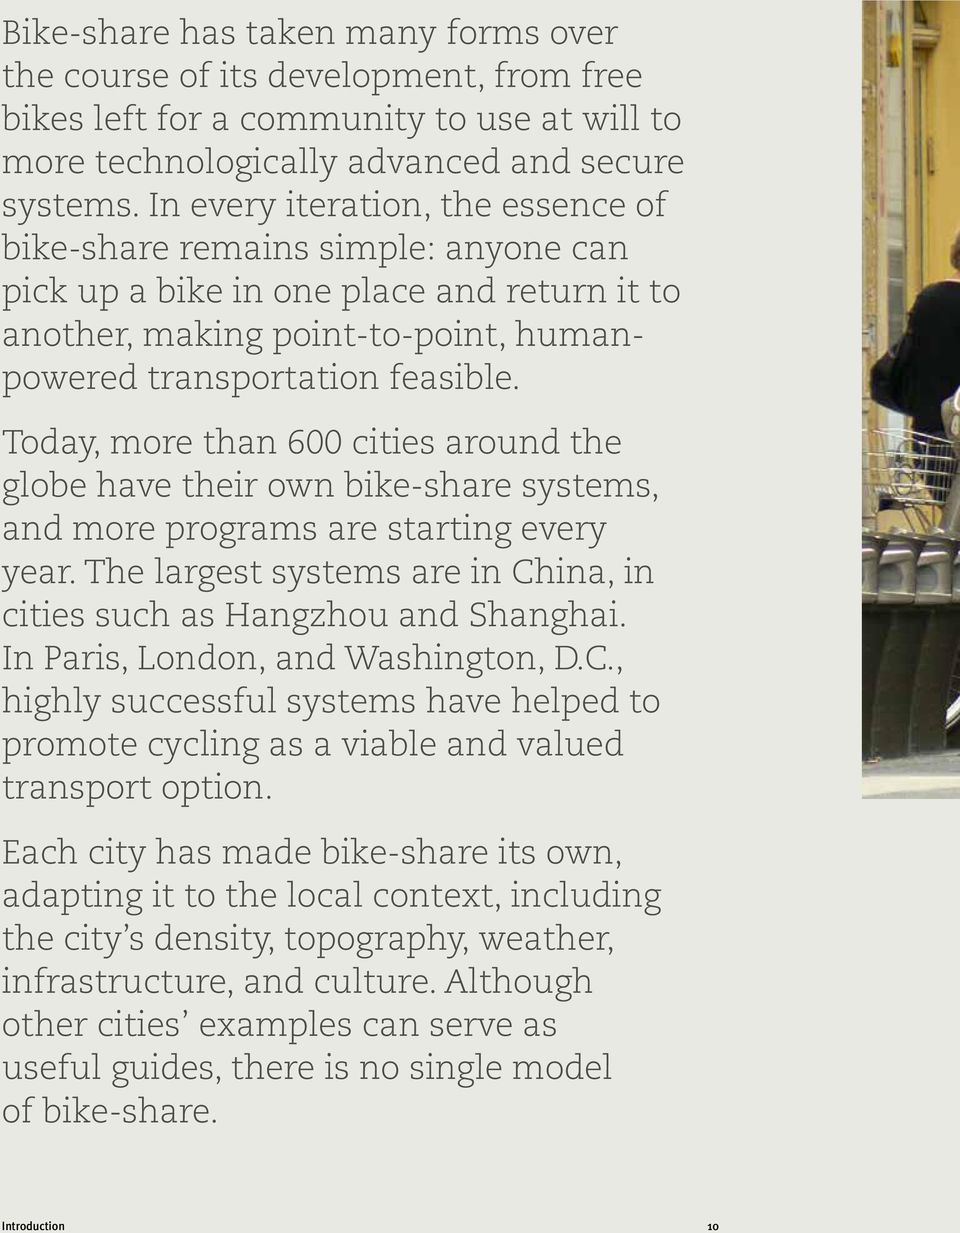 Today, more than 600 cities around the globe have their own bike-share systems, and more programs are starting every year. The largest systems are in China, in cities such as Hangzhou and Shanghai.